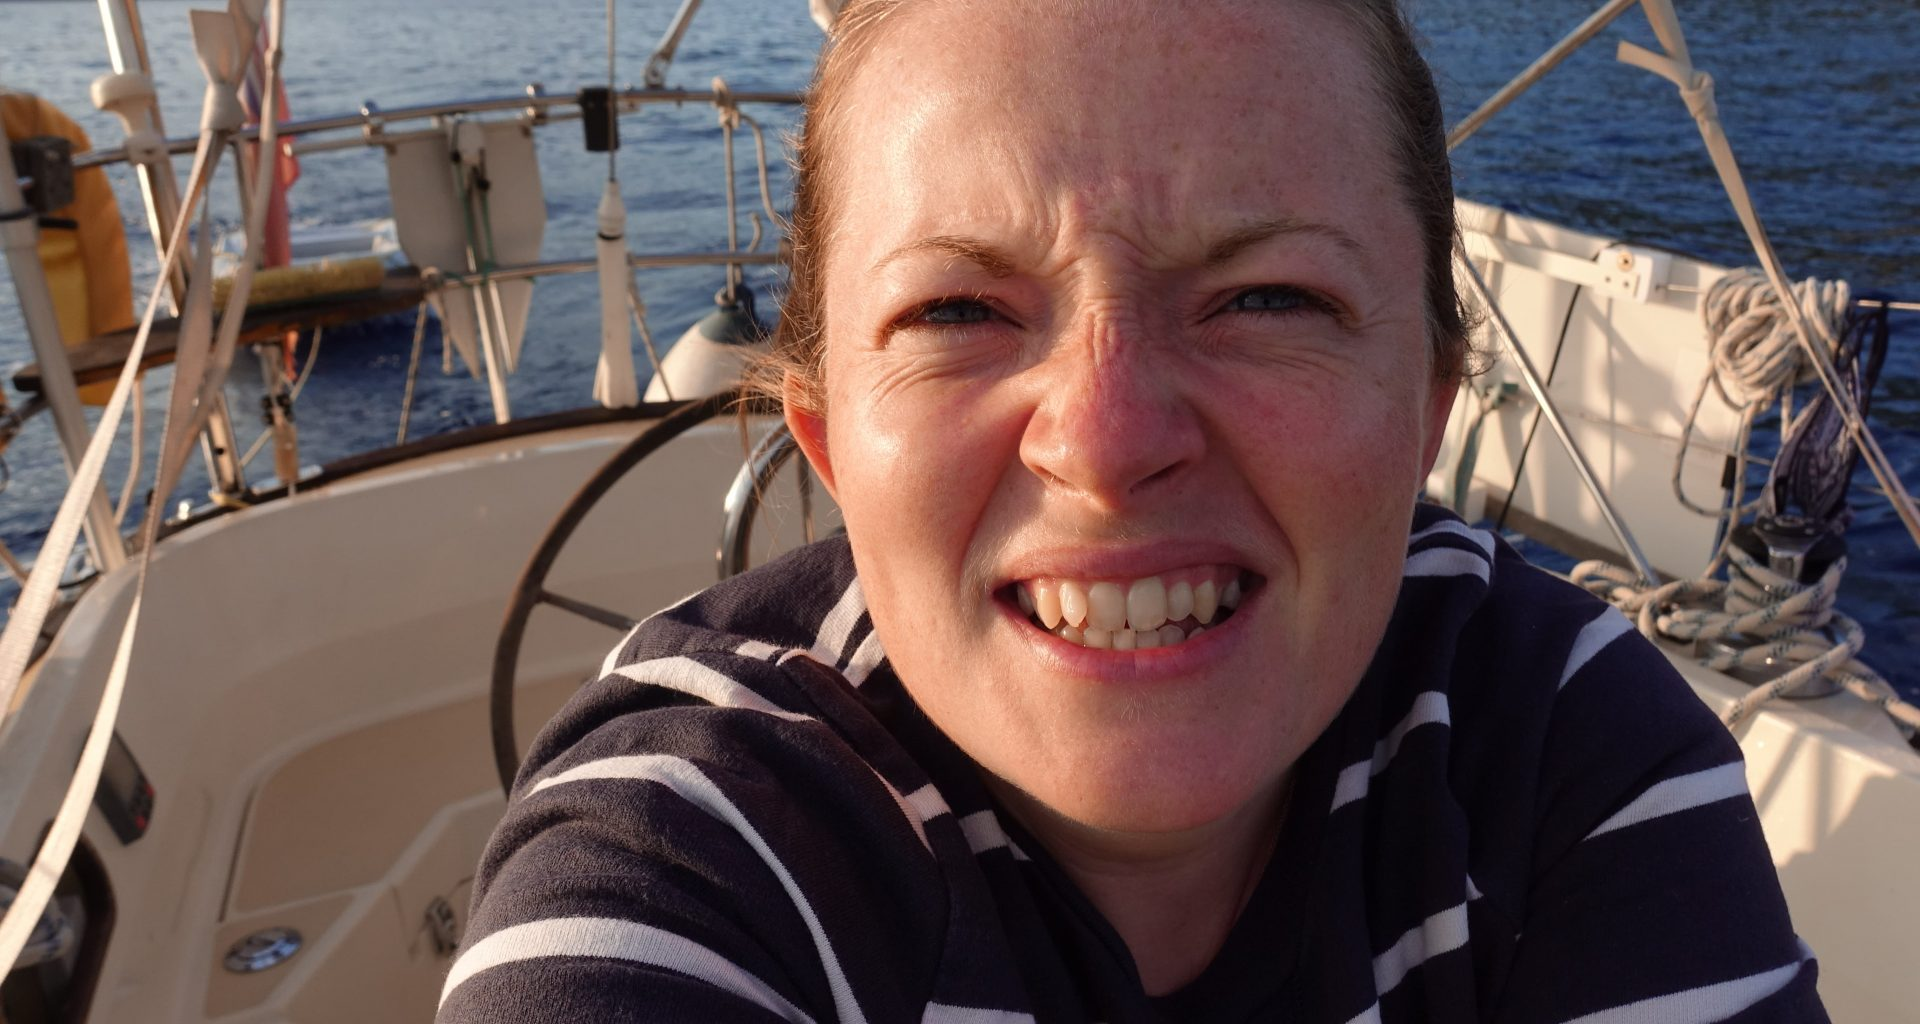 person on a sailing boat